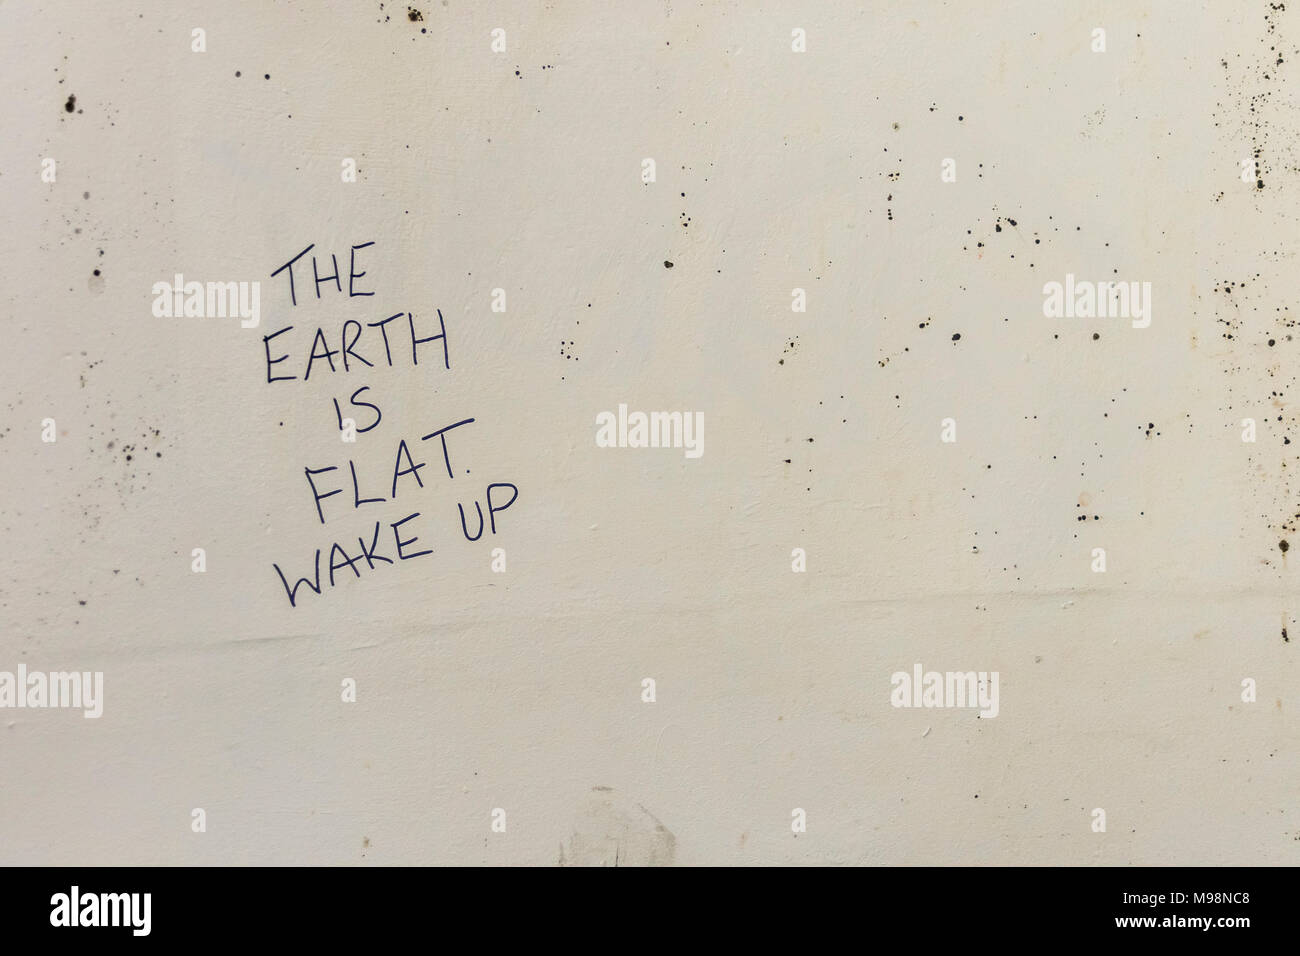 Profound urban philosophical graffiti scrawled on a Plymouth (Devon) wall - The Earth is Flat (perhaps metaphor for Flat Earth Society. :) - Stock Image